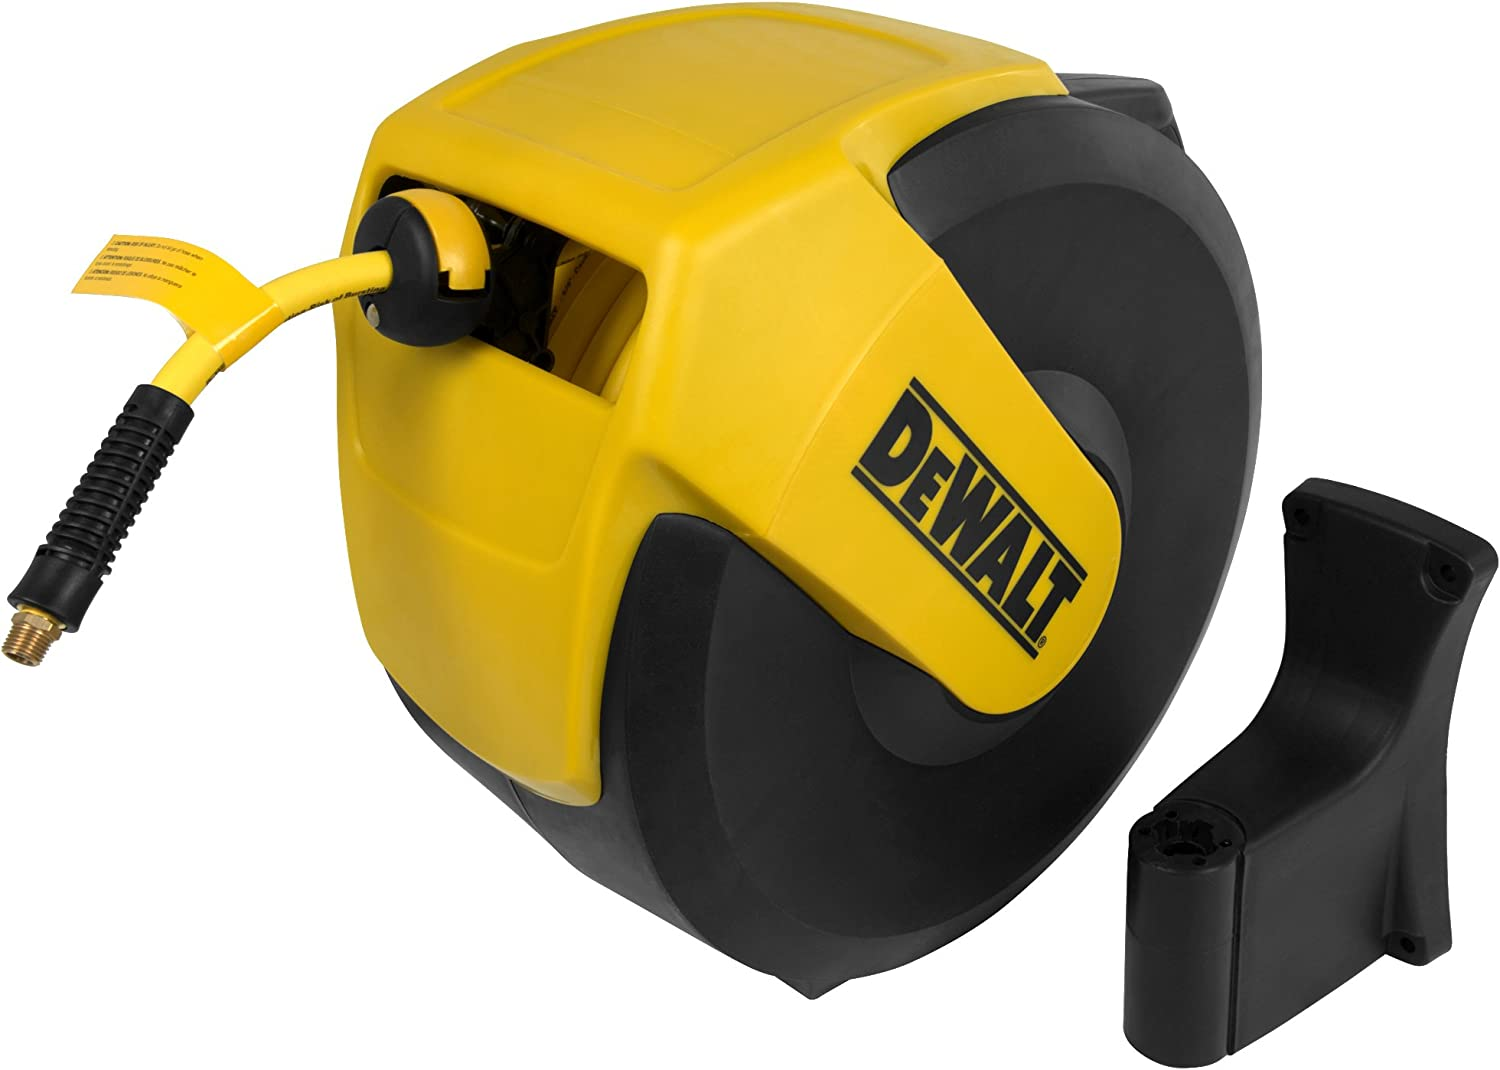 DeWalt DXCM024-0345 Hose Reel Automatic Retraction Enclosed Air Hose Reel - -